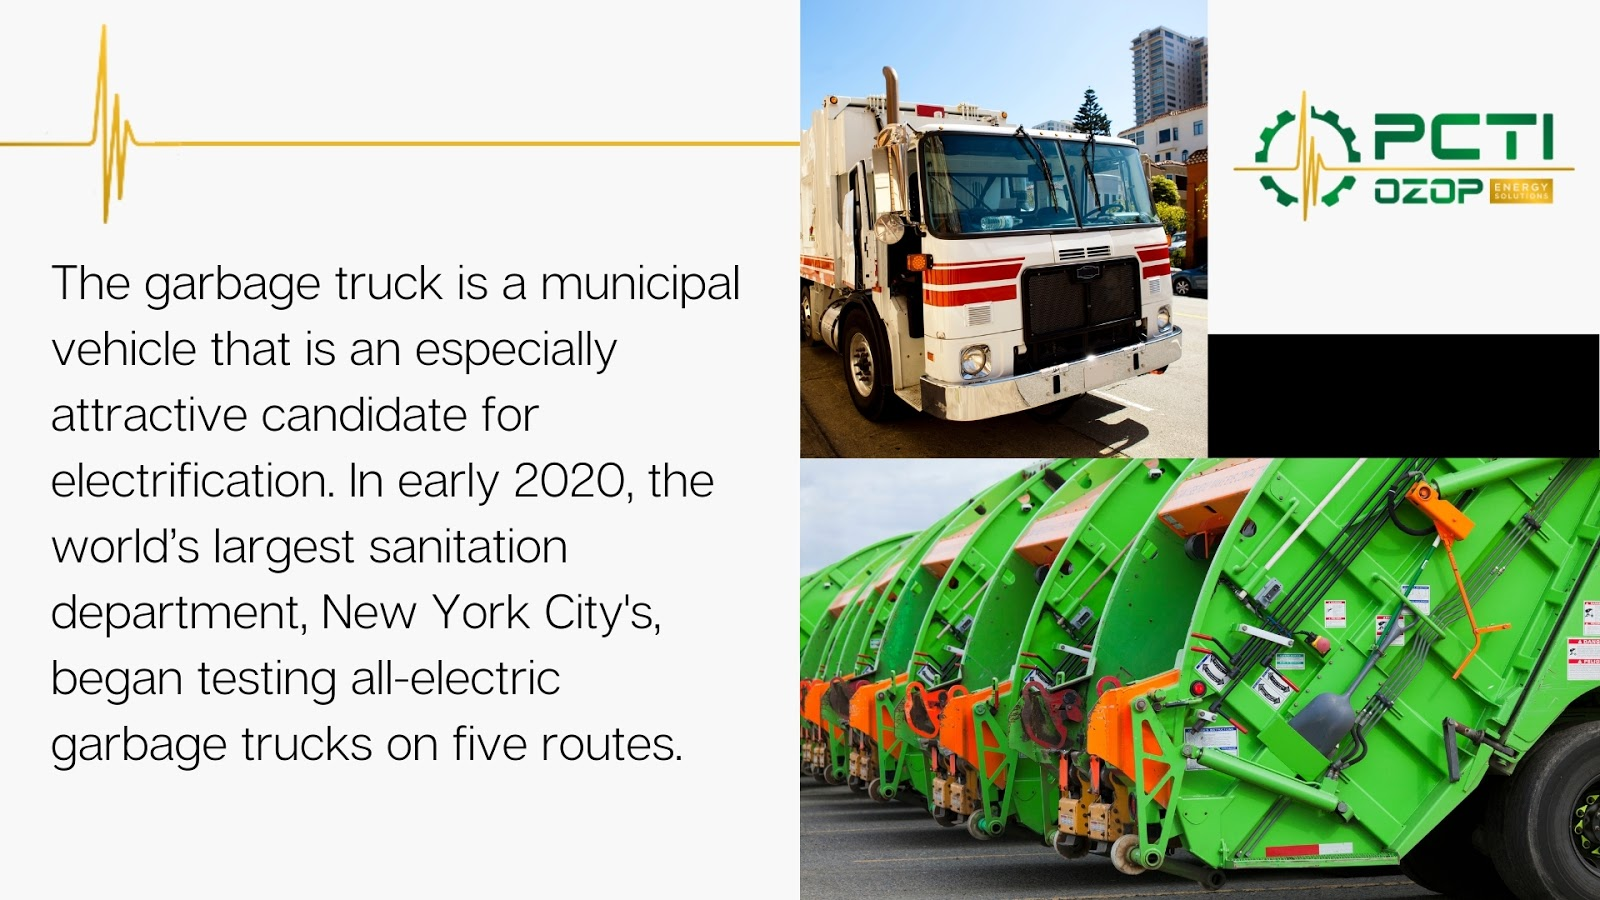 The garbage truck is a municipal vehicle that is an especially attractive candidate for electrification